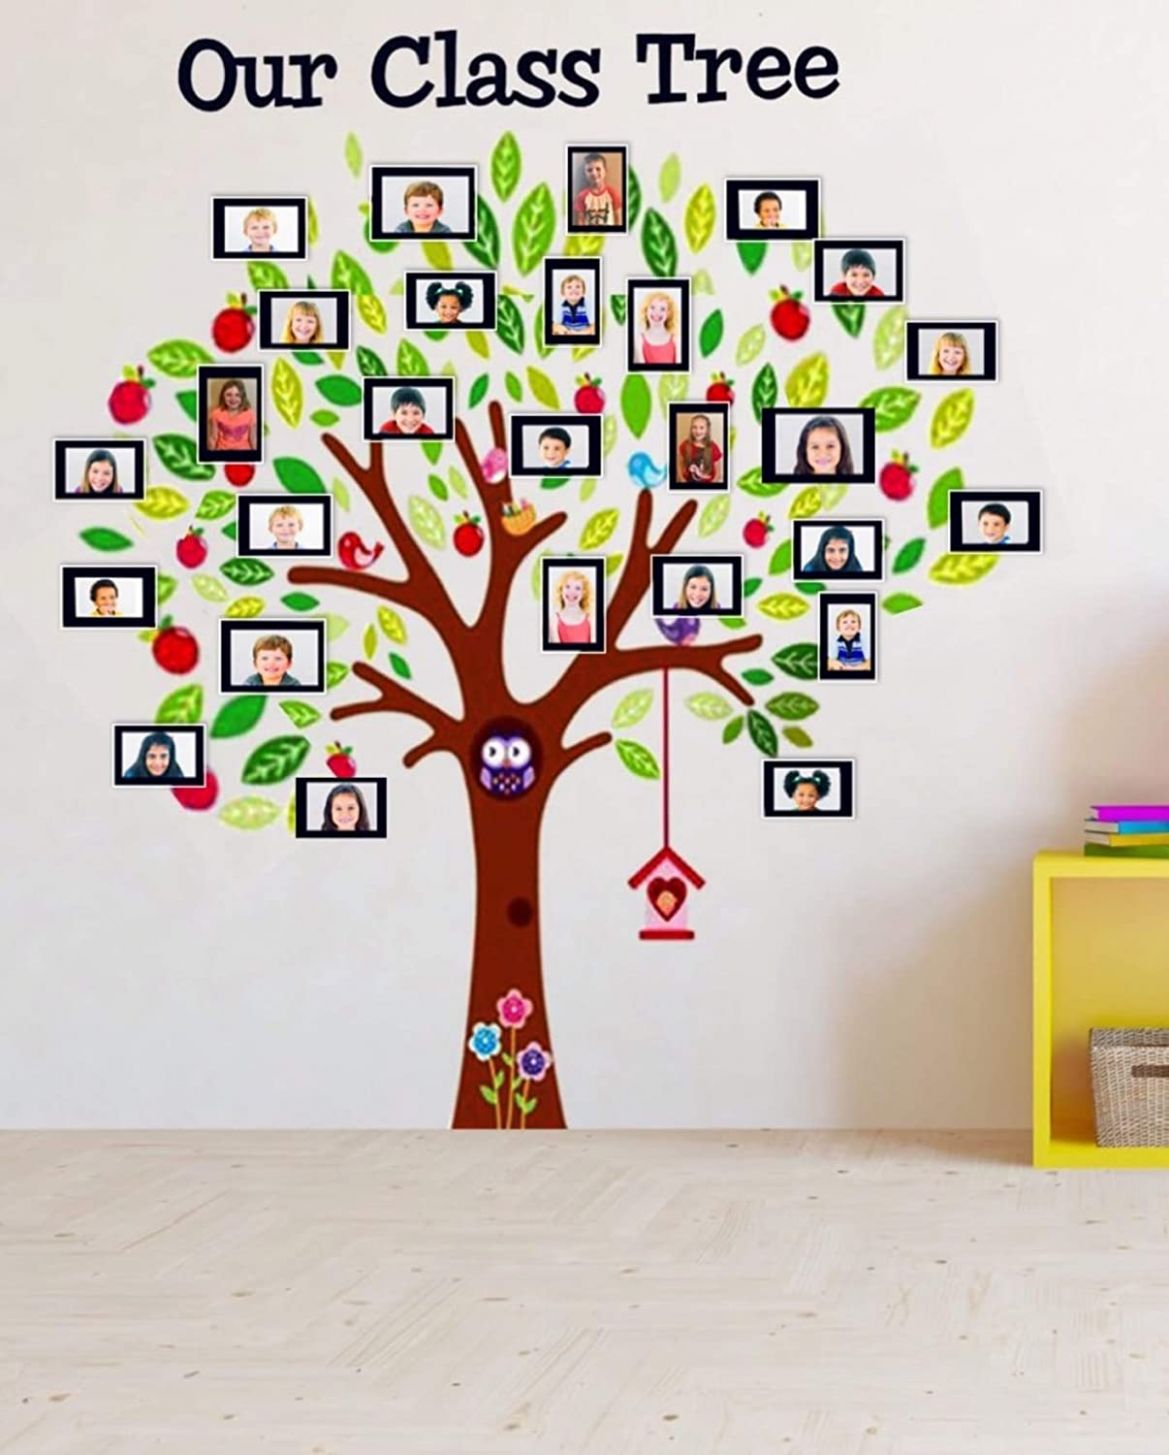 Classroom Decoration Class Tree Wall Decal Sticker with Picture ..